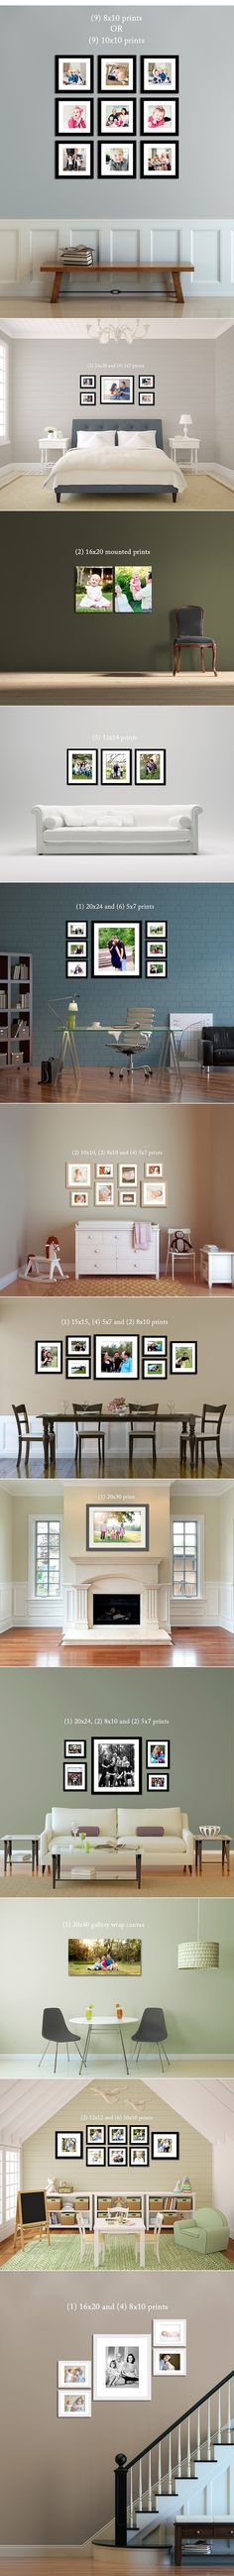 gallery print set ideas...